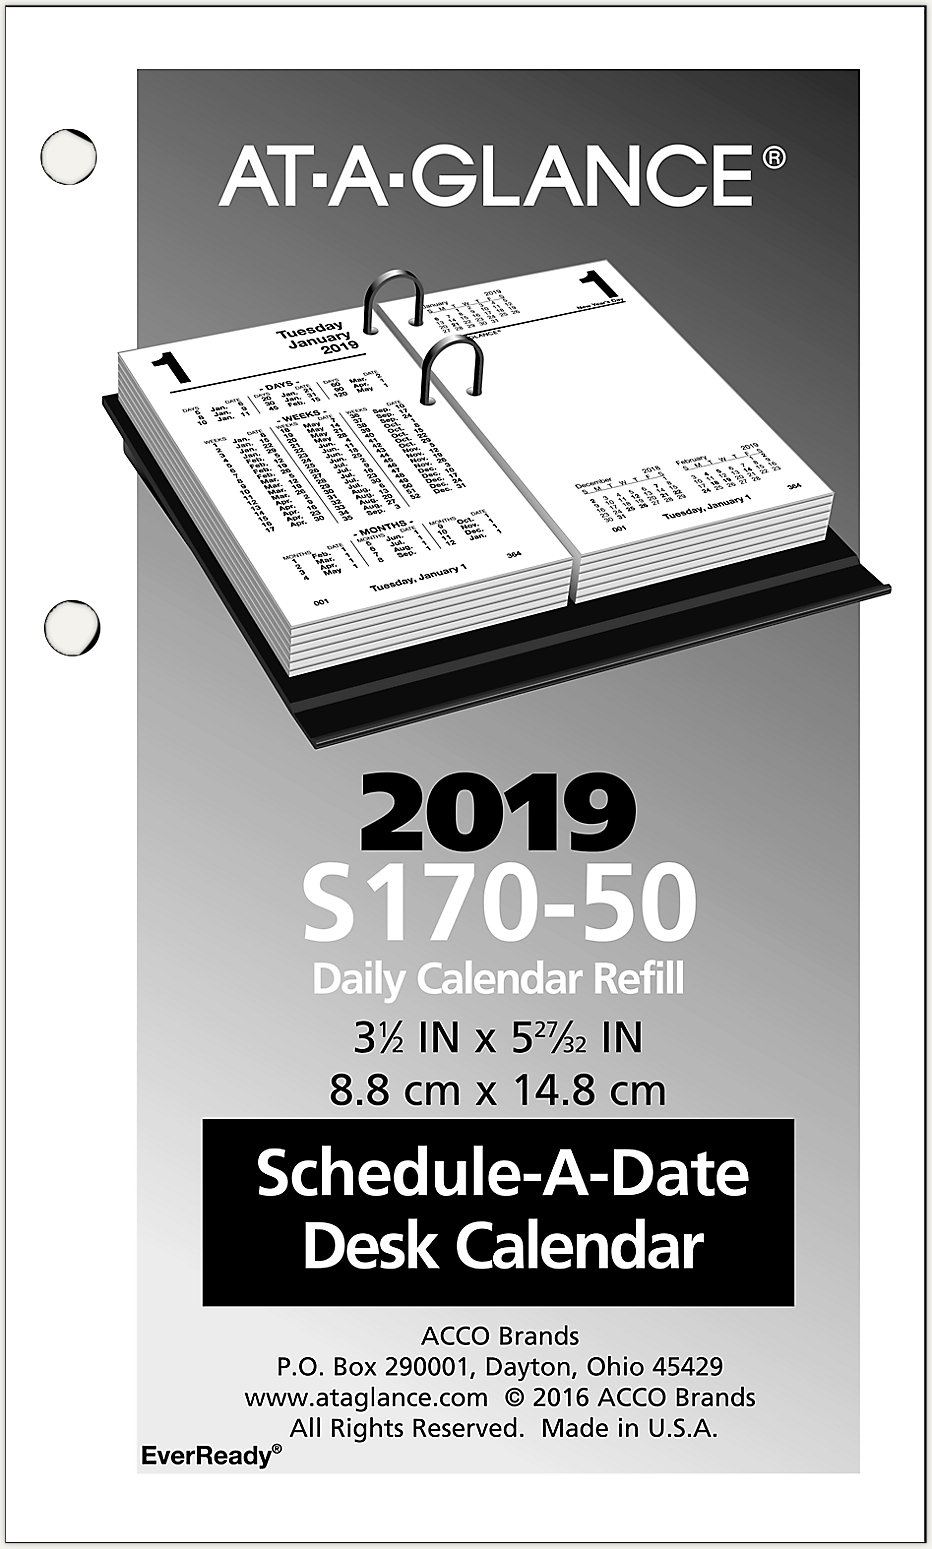 financial daily desk calendar refill s170 at a glance